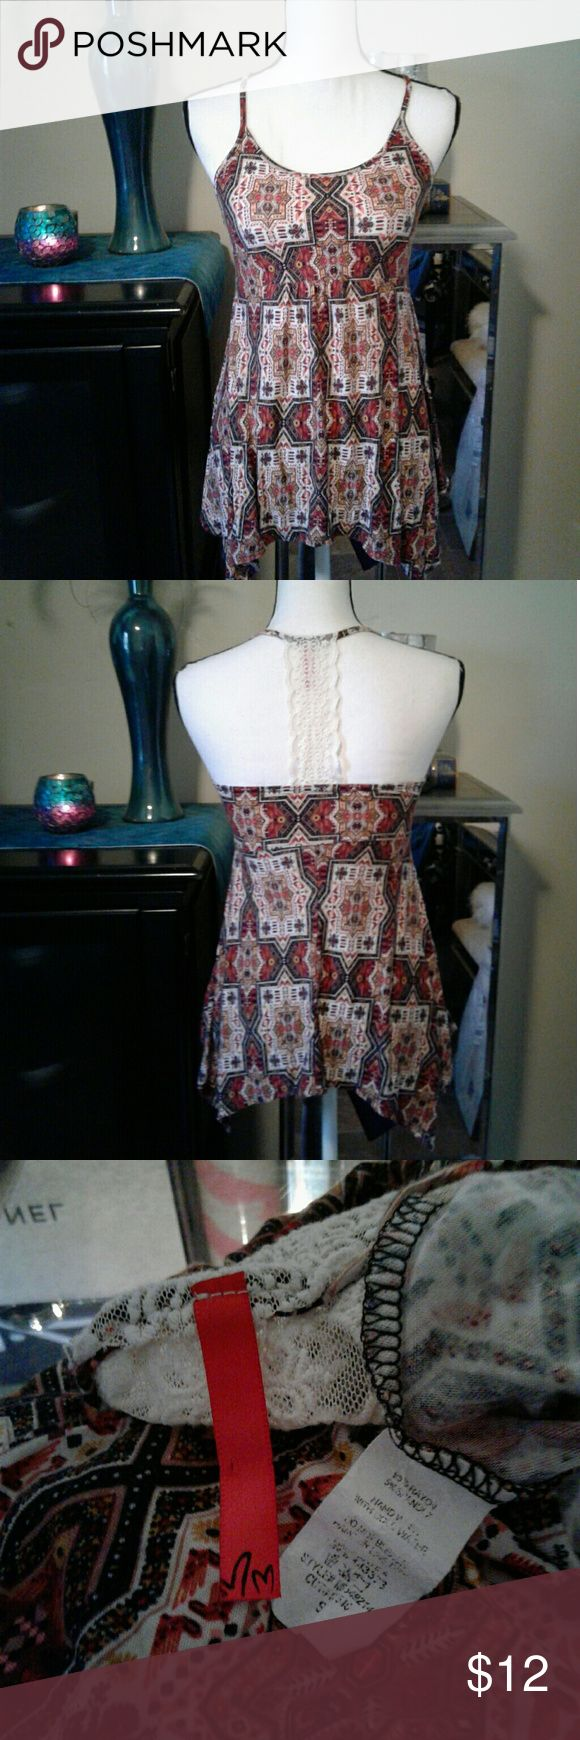 """Lace back tribal asymmetrical tank top Women's very gently pre loved brown/red multicolored tribal asymmetrical tank top with lace detail on back. Size Small. Measurements Chest 13"""" length 22"""". Thanks for looking Bundle to save!! Tops Tank Tops"""